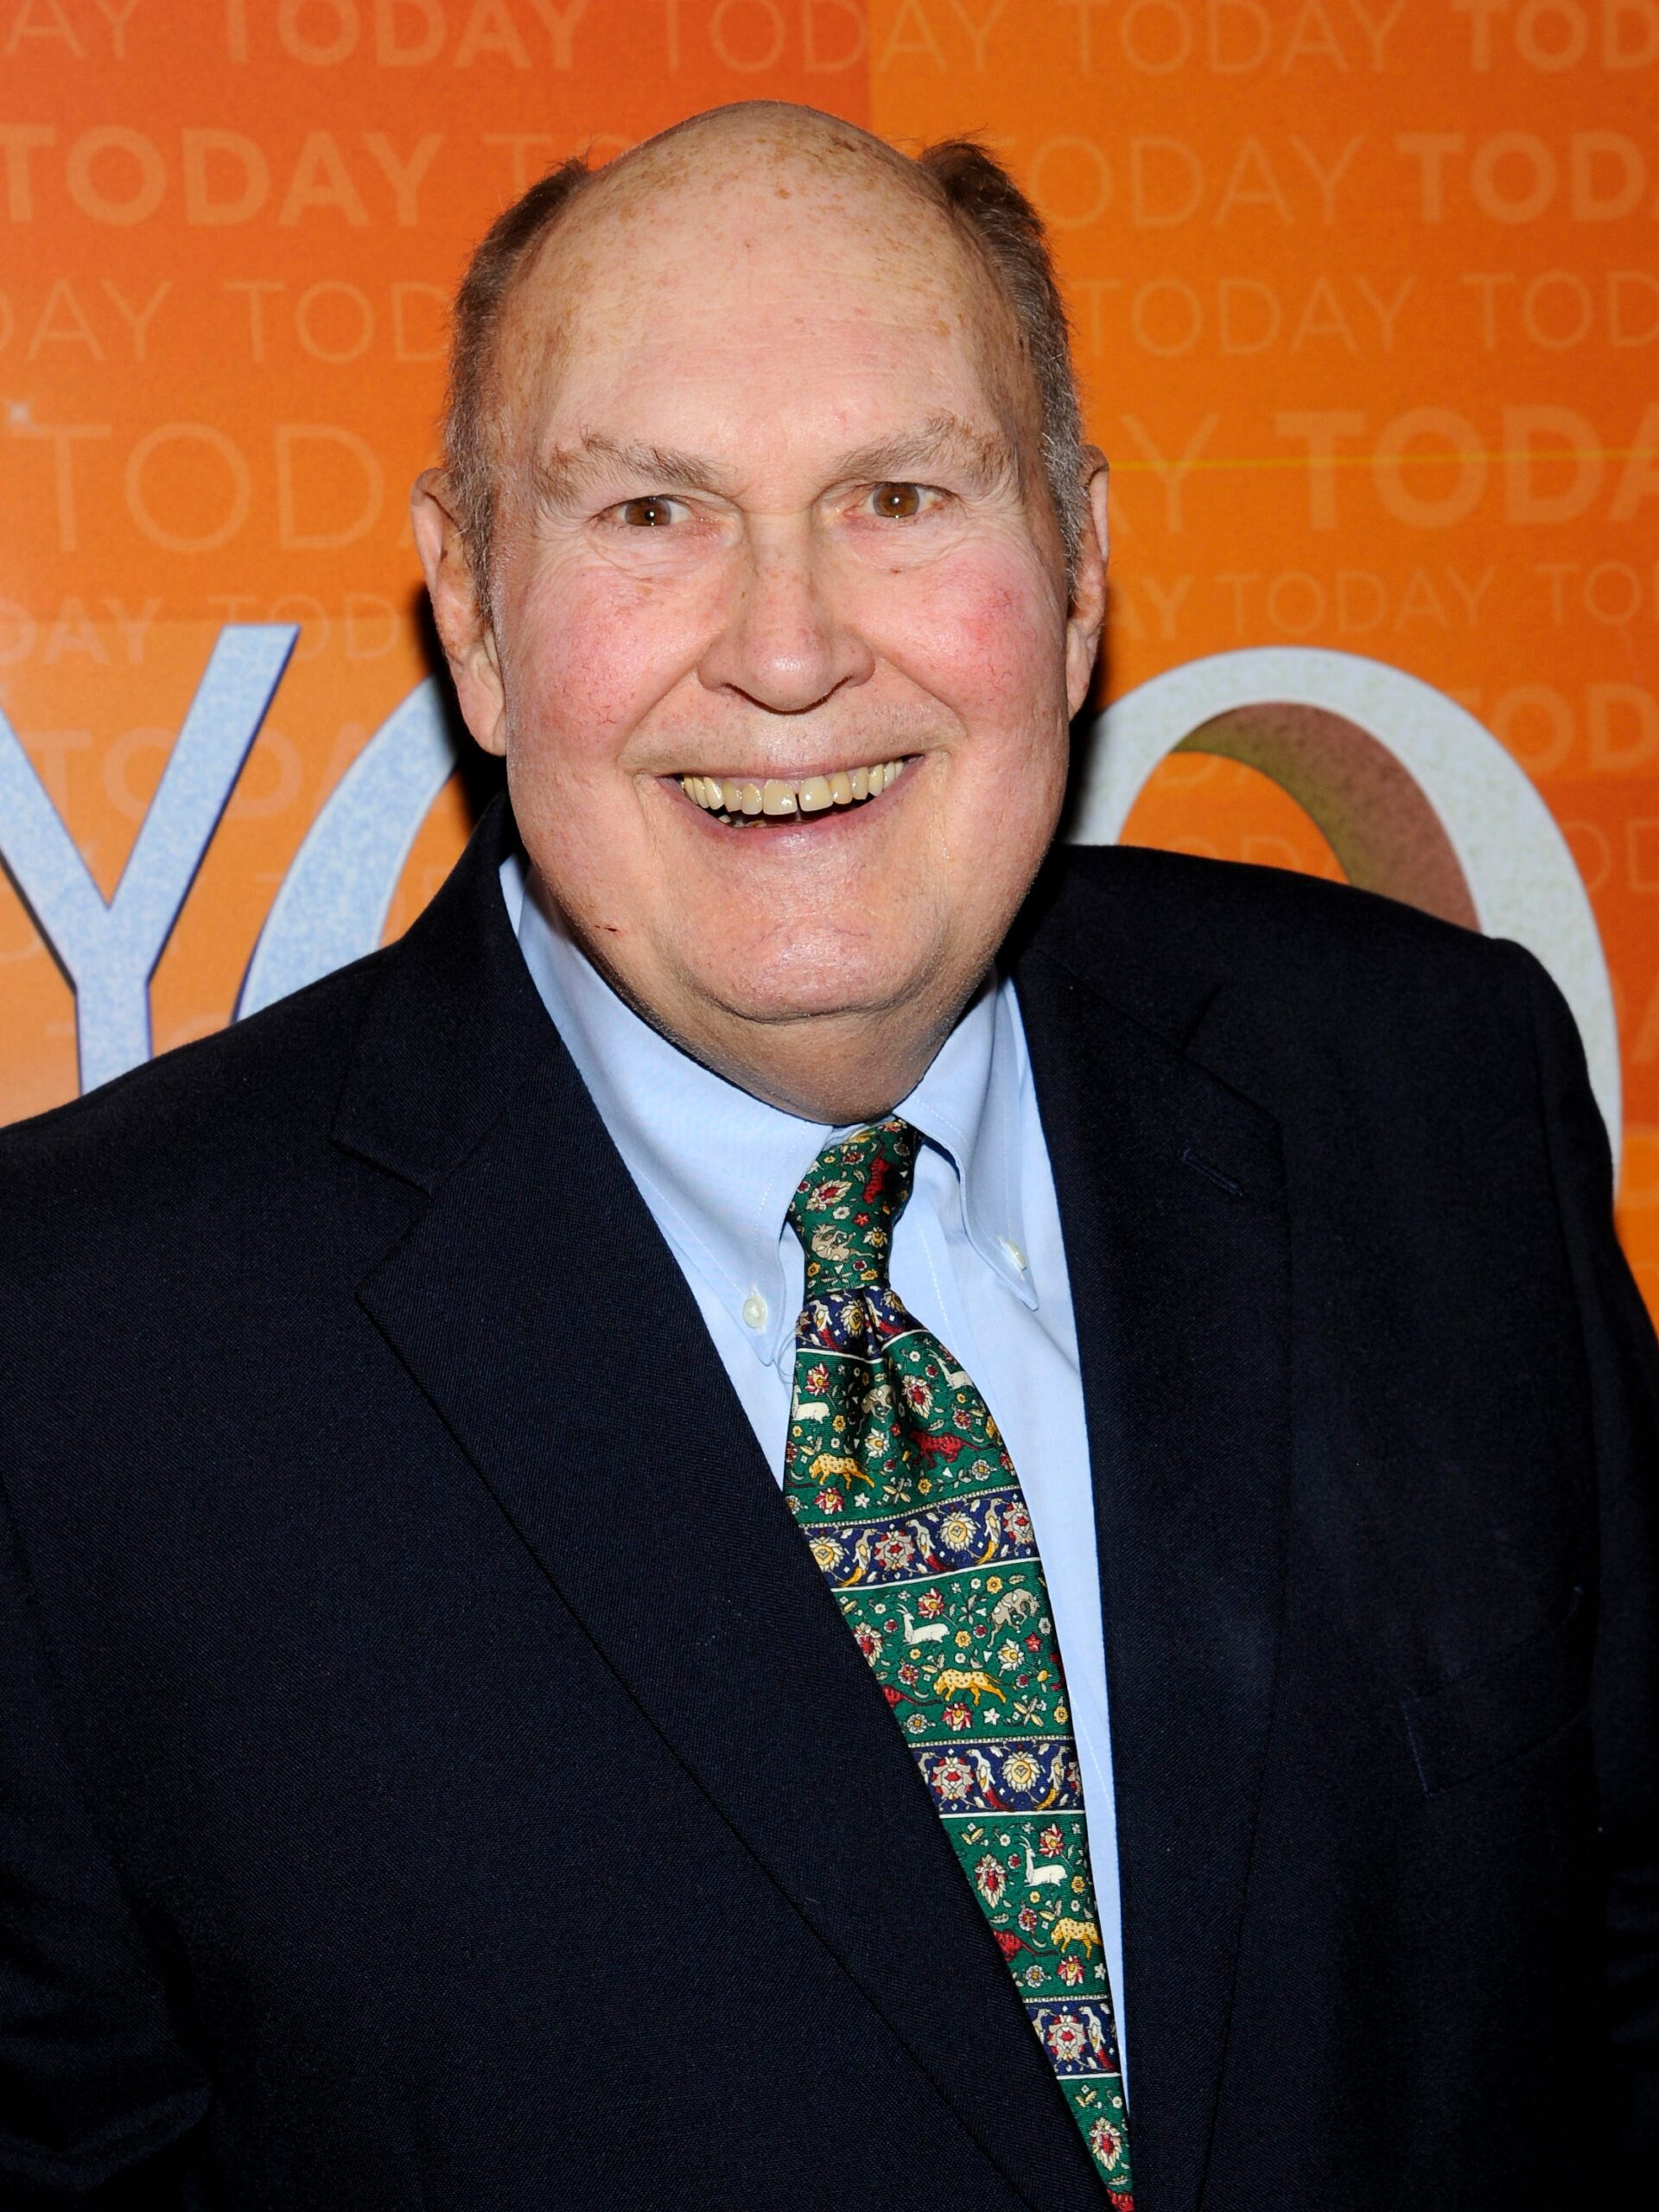 Willard Scott Phone number, Email Id, Fanmail, Instagram, Tiktok, and Contact Details